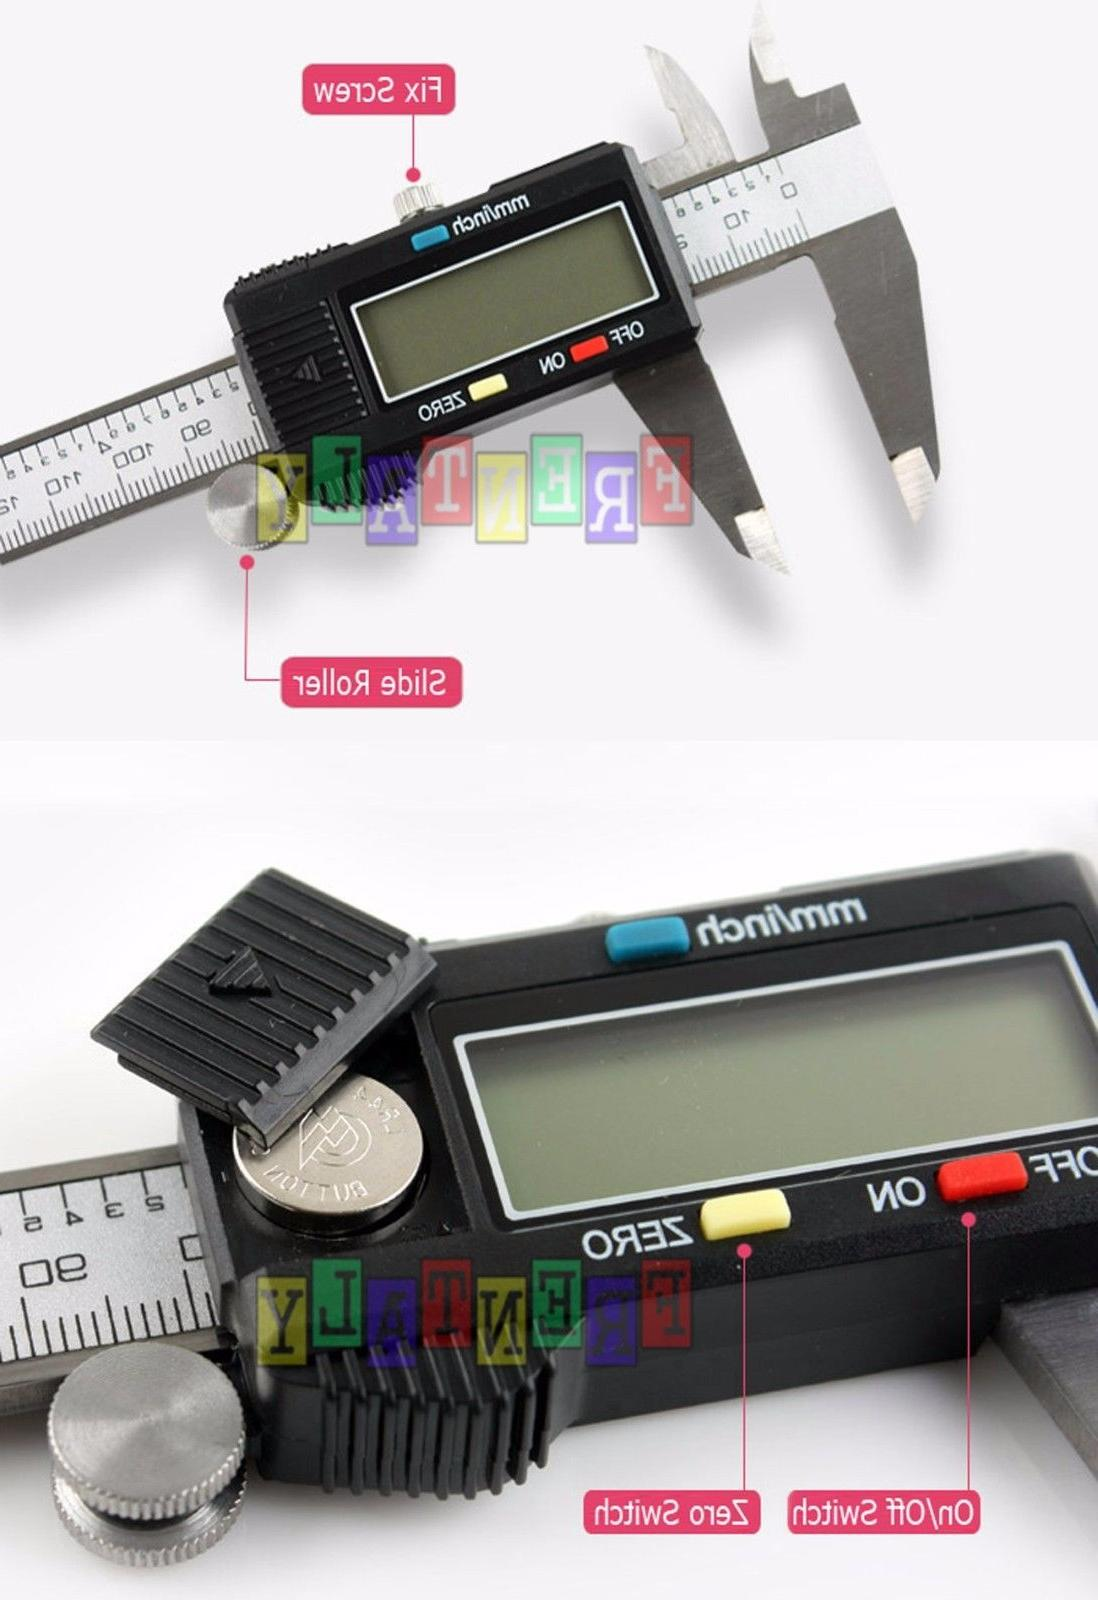 6 150mm Digital Electronic LCD Stainless Gauge Caliper